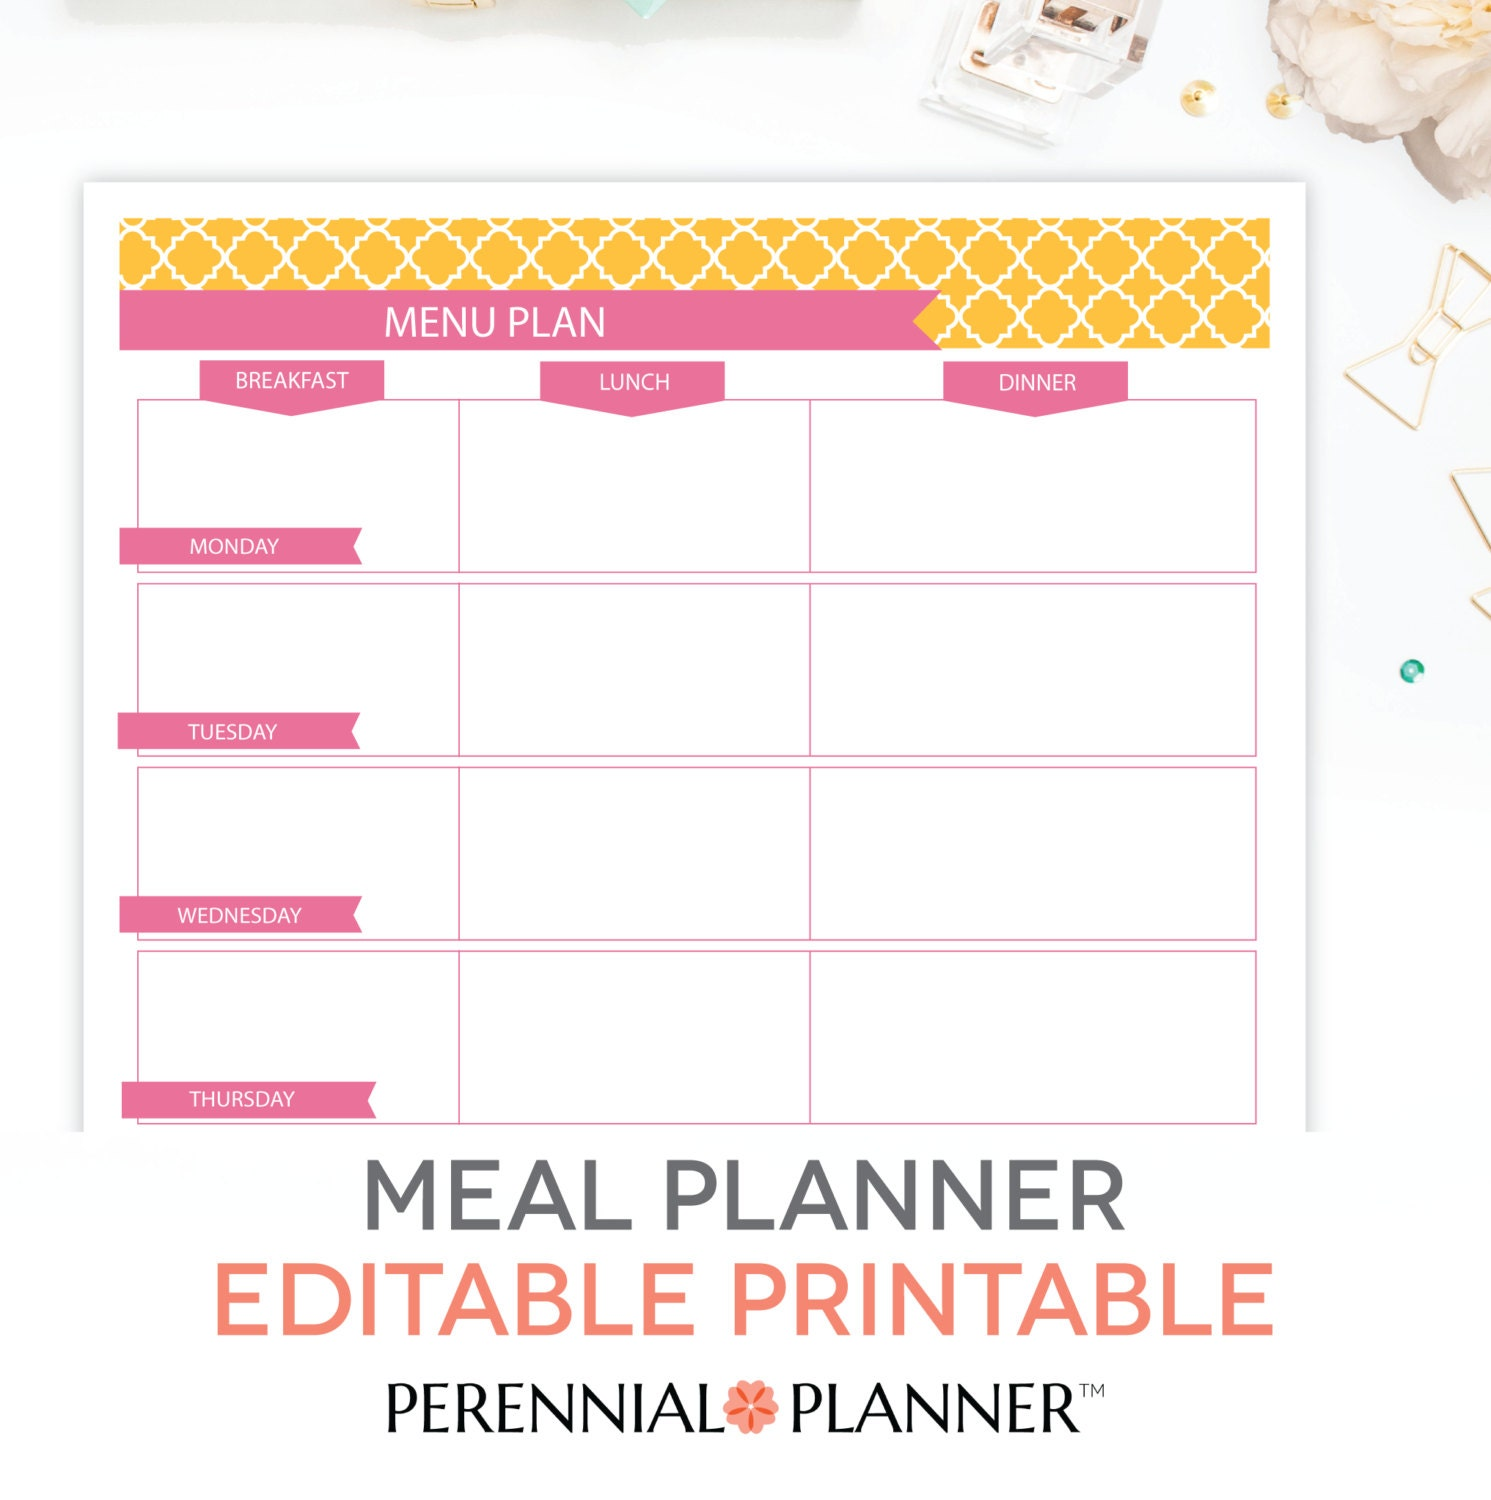 Superb image pertaining to meal planner printable